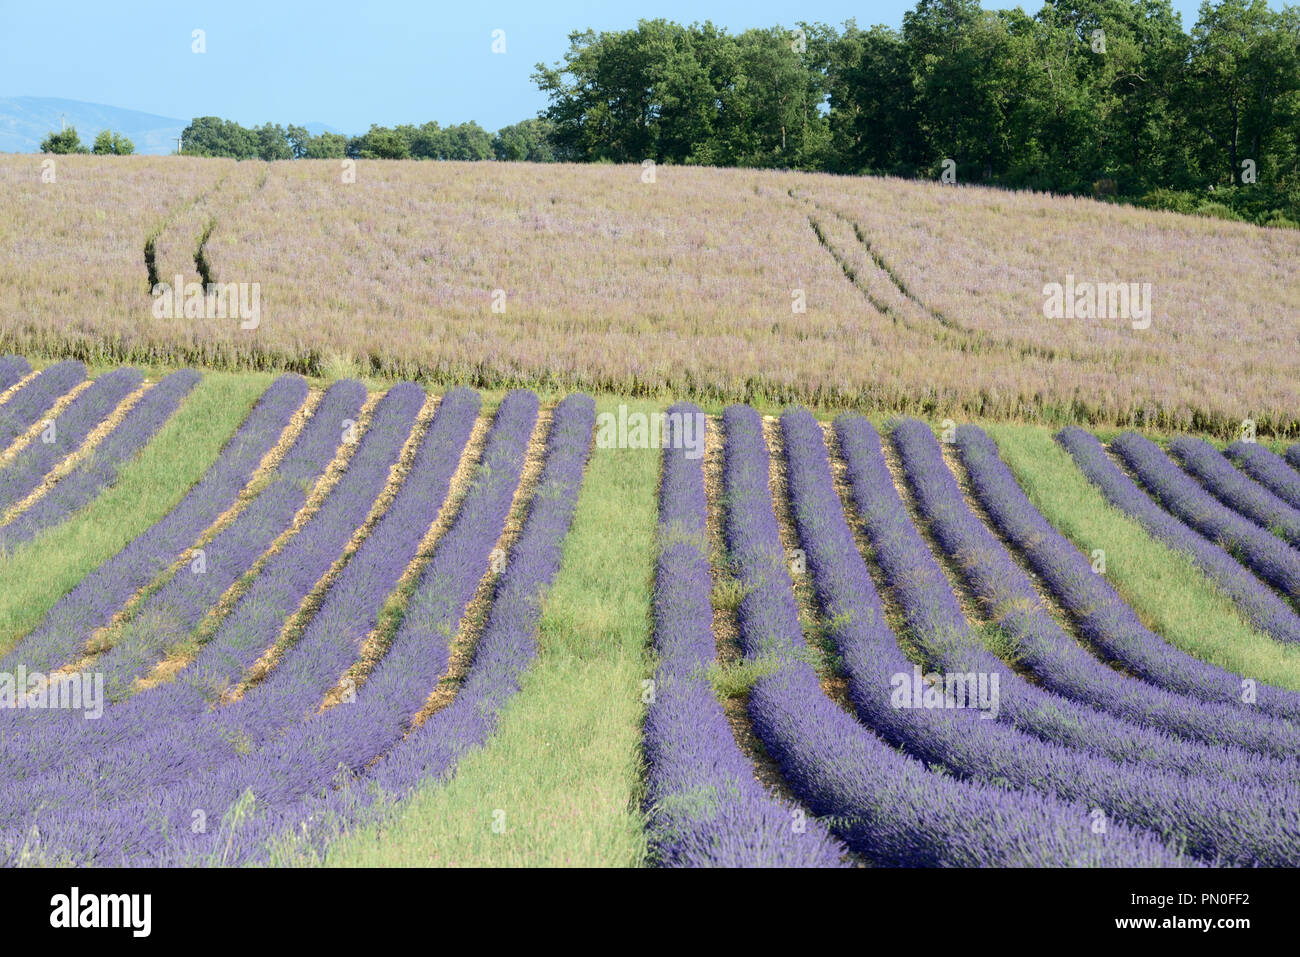 Rows of Lavender Plants & Field of Clary or Clary Sage, Salvia sclarea, on the Valensole Plateau Provence France - Stock Image